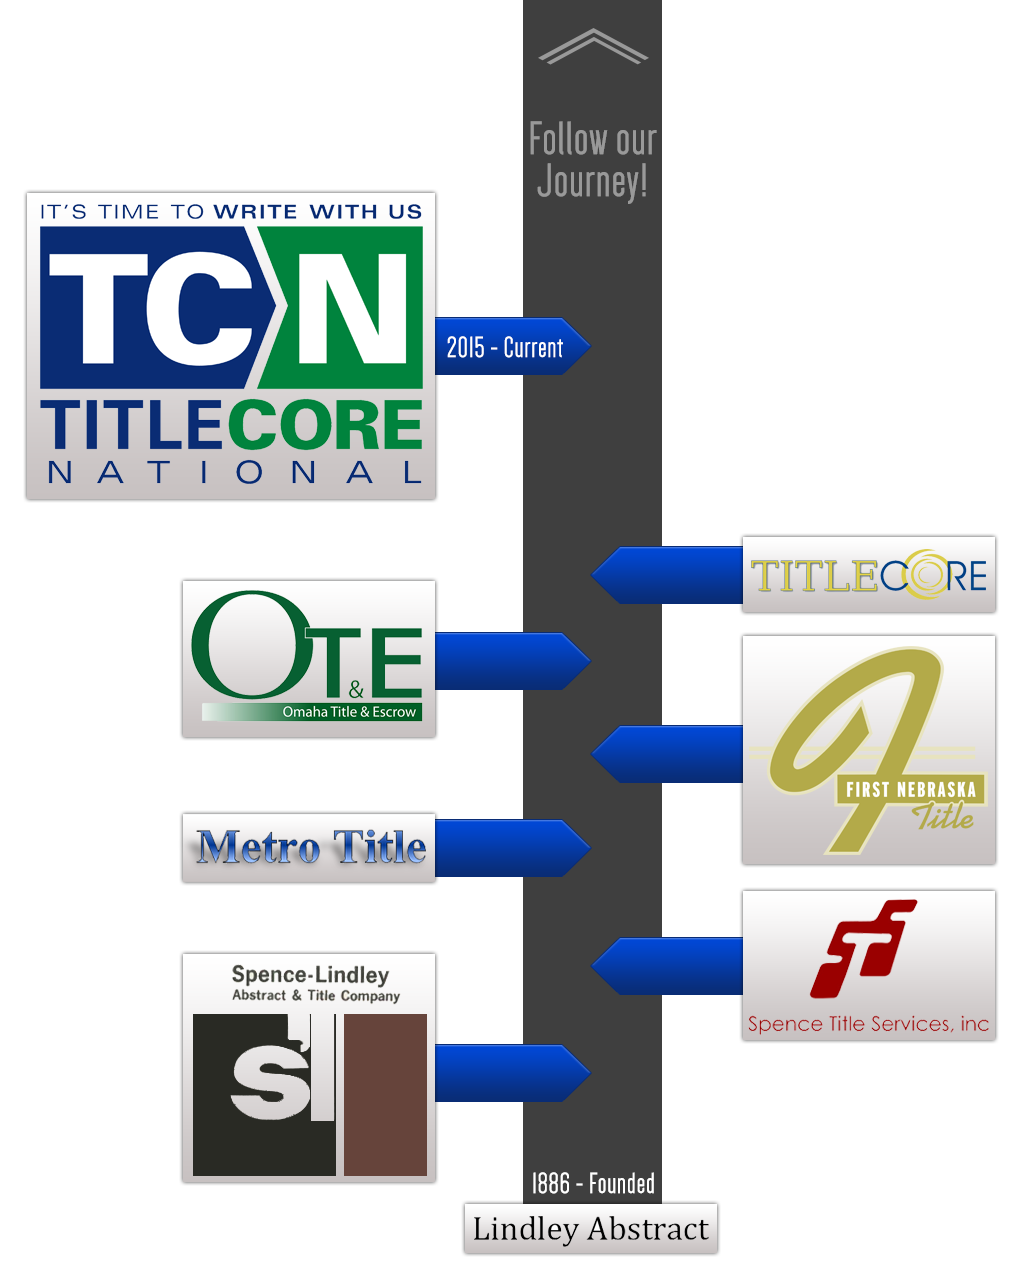 titlecore_about_timeline